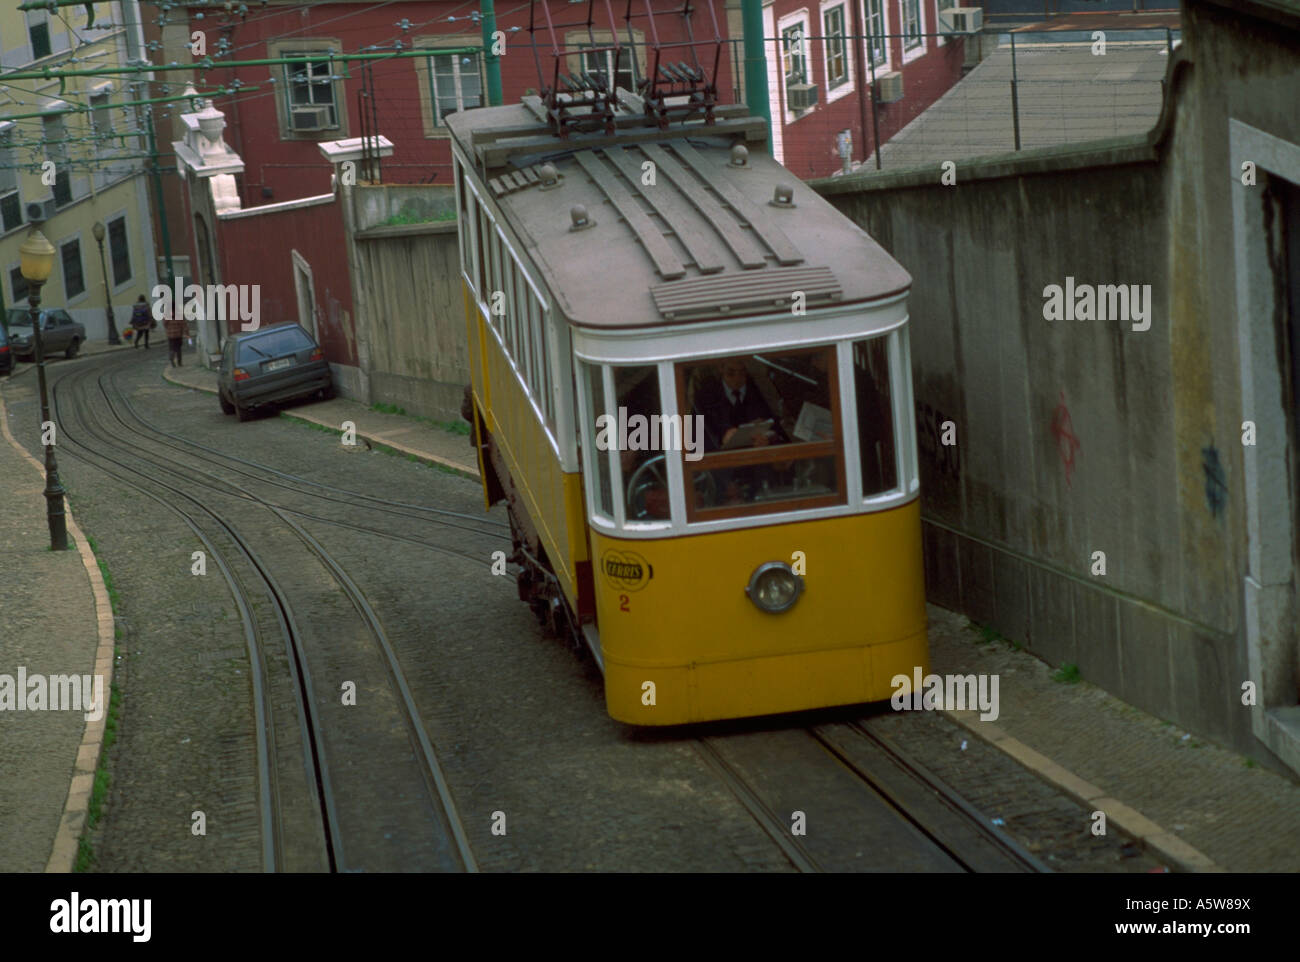 Cable Car Carrier Stock Photos & Cable Car Carrier Stock Images - Alamy